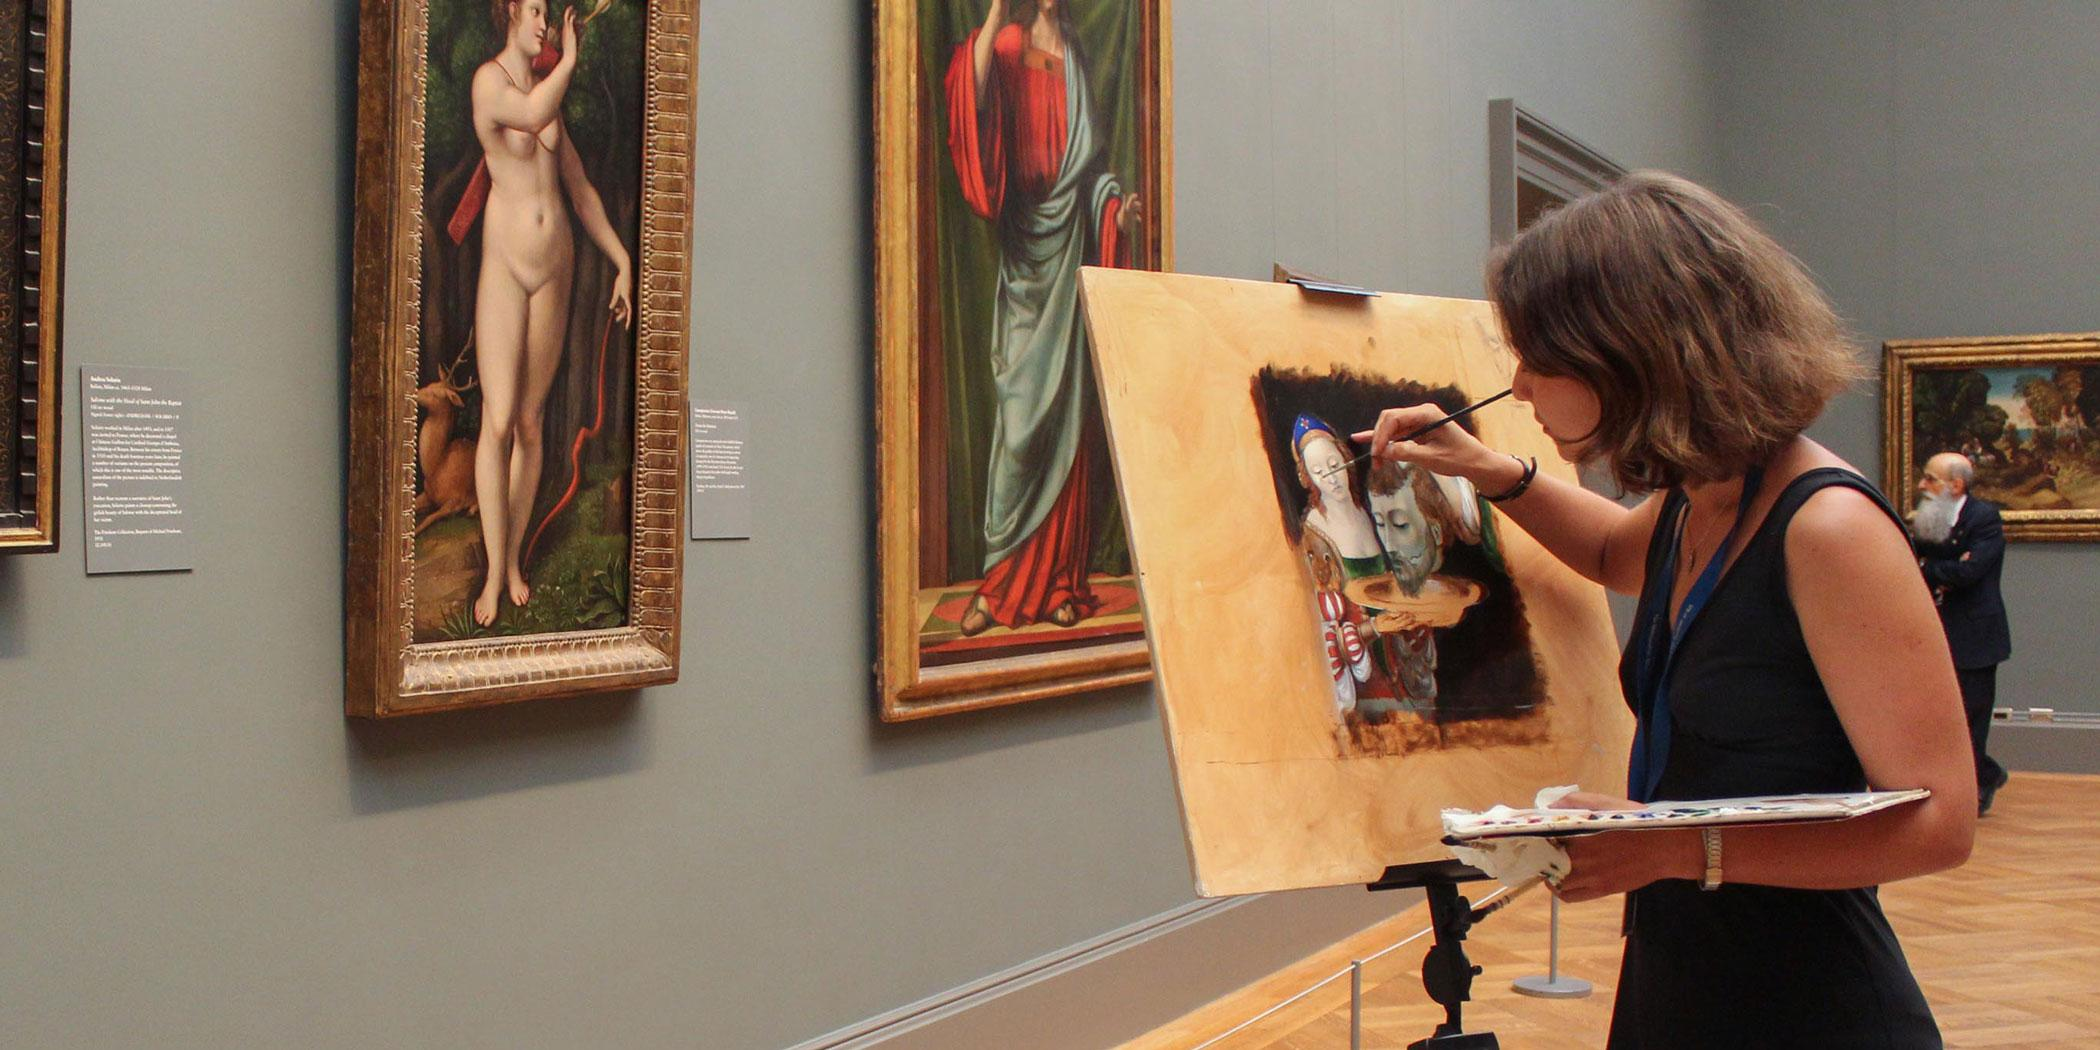 People copying paintings at the Metropolitan Museum of Art